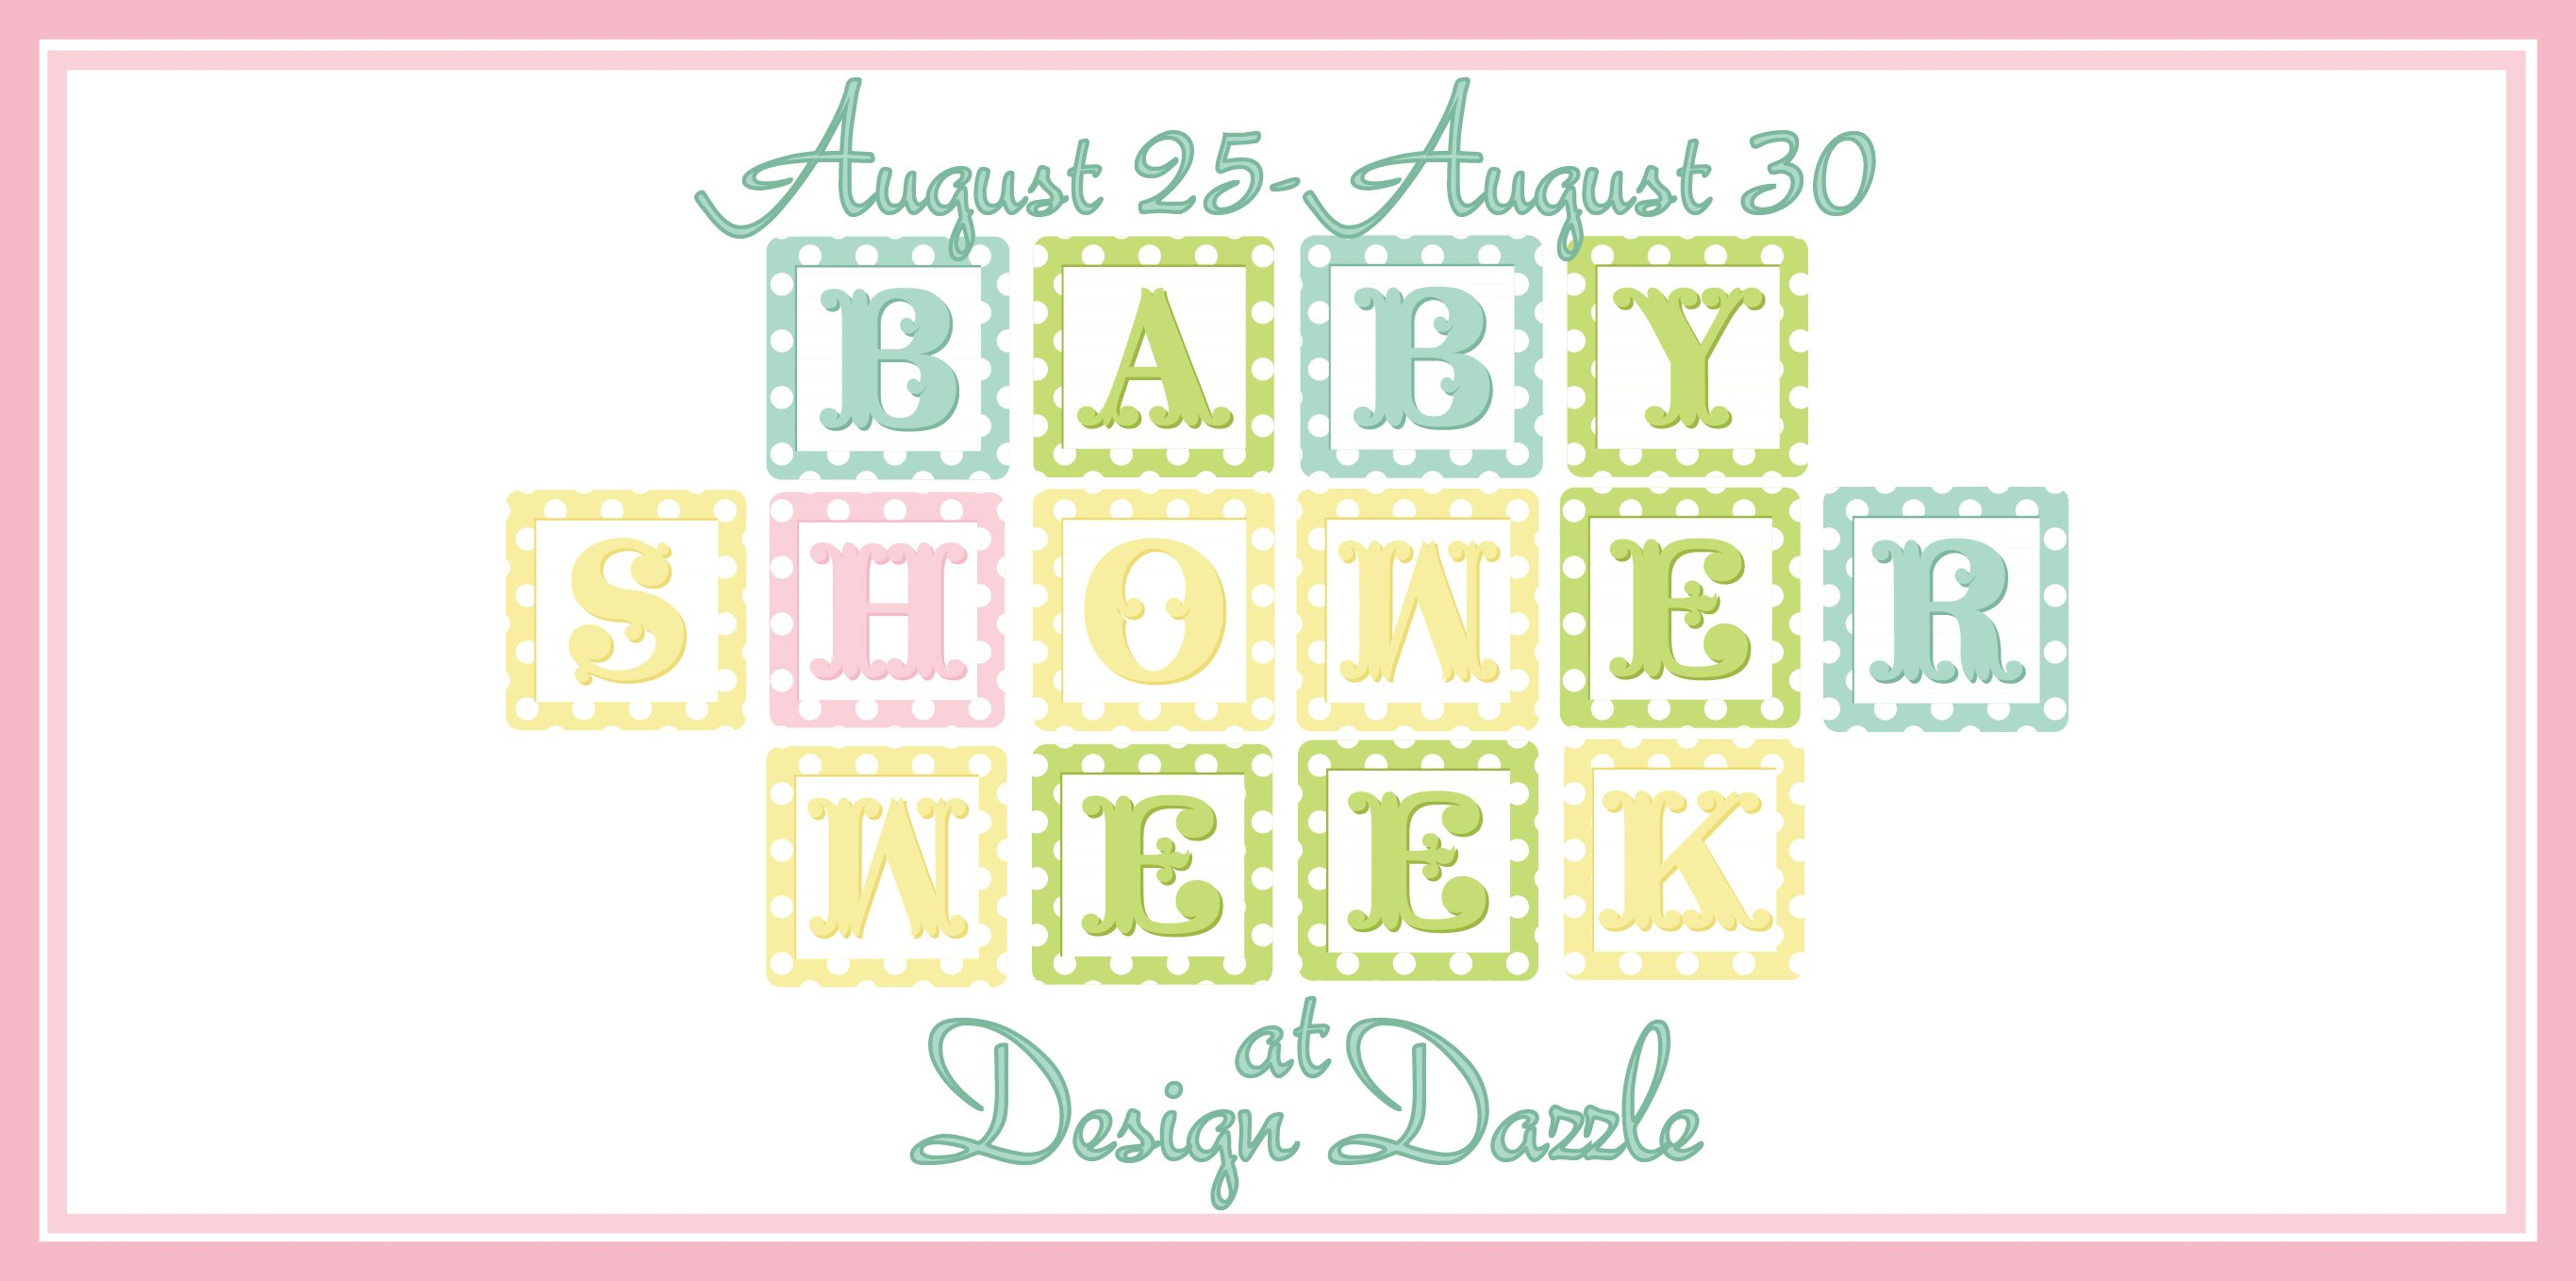 Baby Shower Week at Design Dazzle